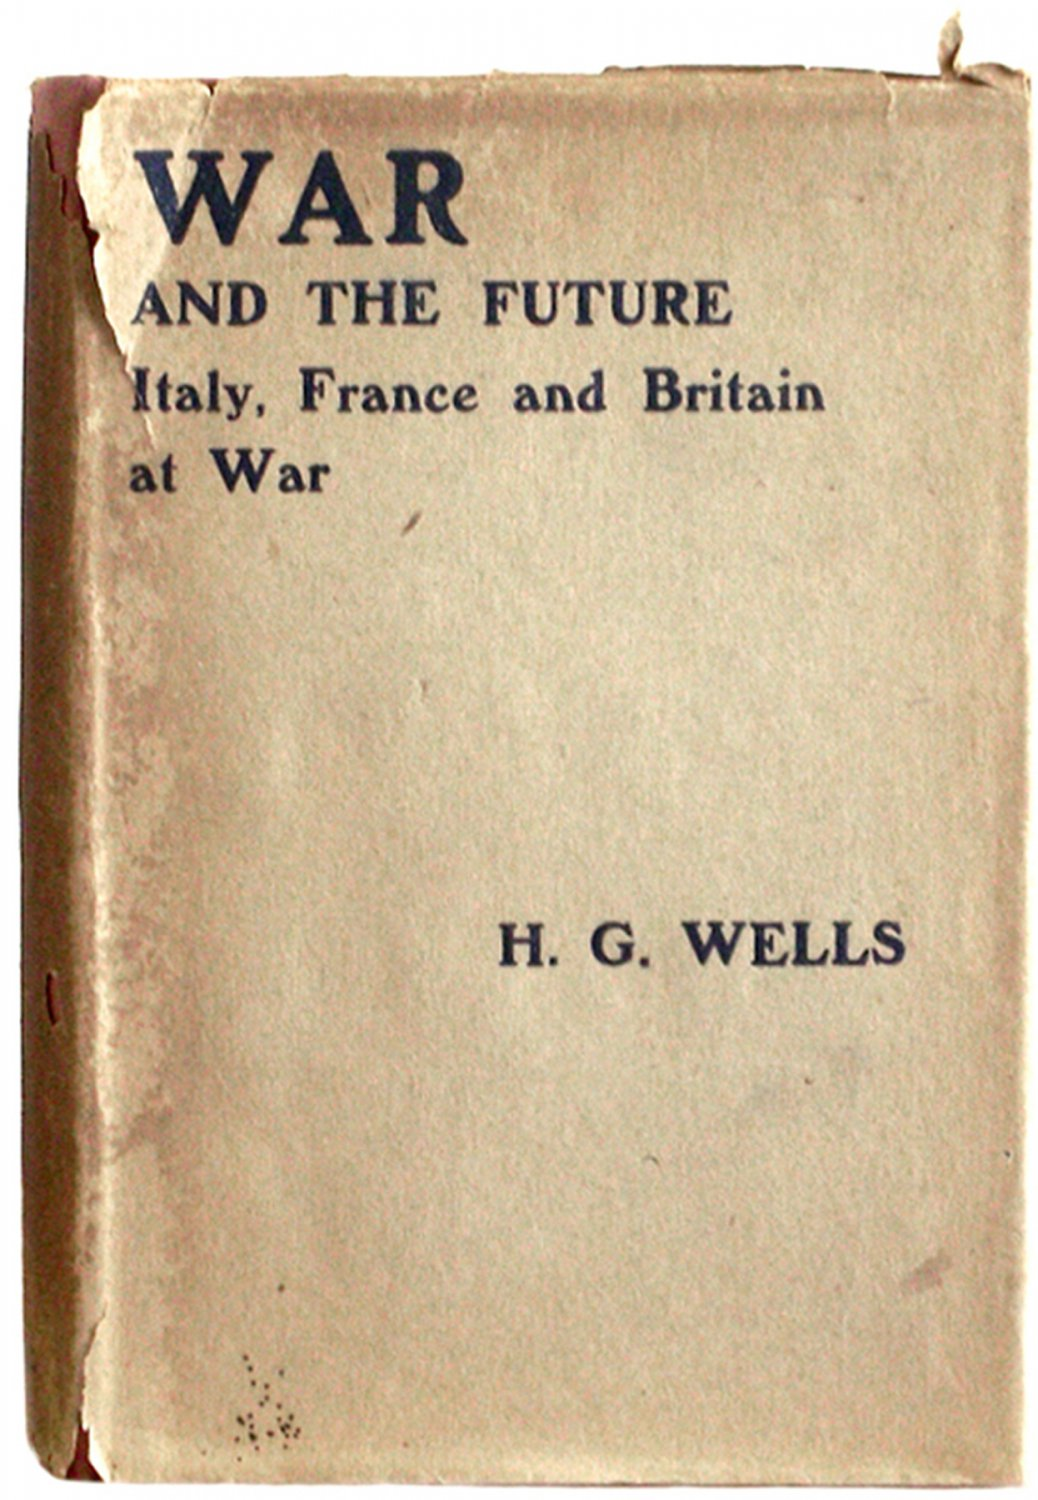 H.G. Wells War and the Future First Edition 1917